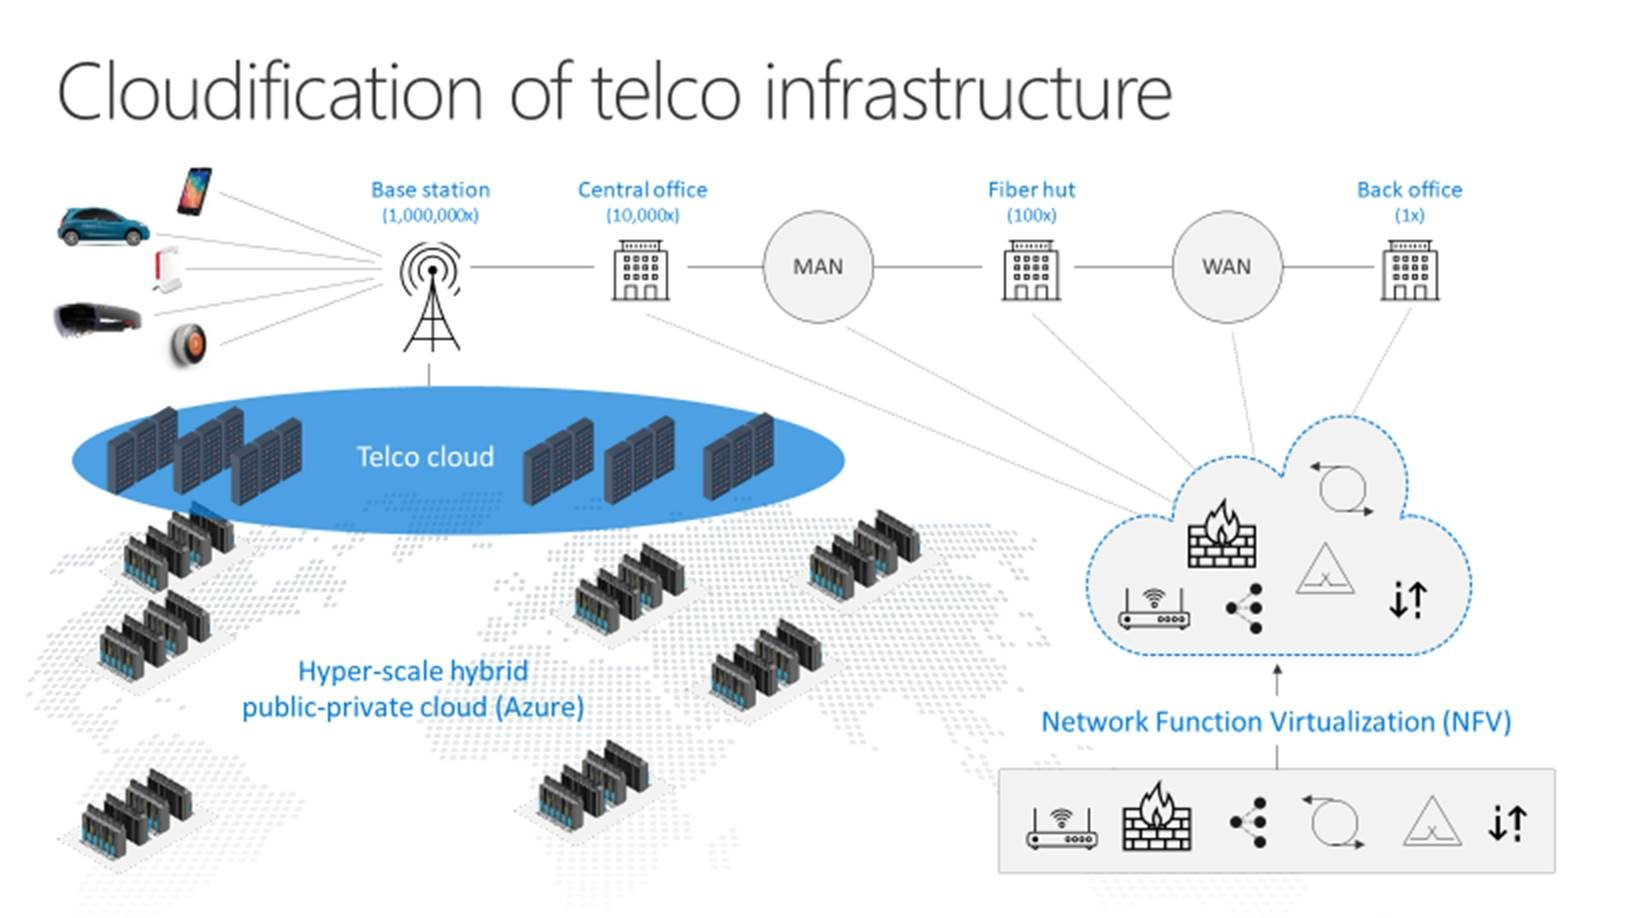 telecom network diagram microsoft wiring for installing a car stereo cloudification of telco infrastructure industry blogs often referred to as function virtualization nfv core use is very non traditional model telecommunications companies